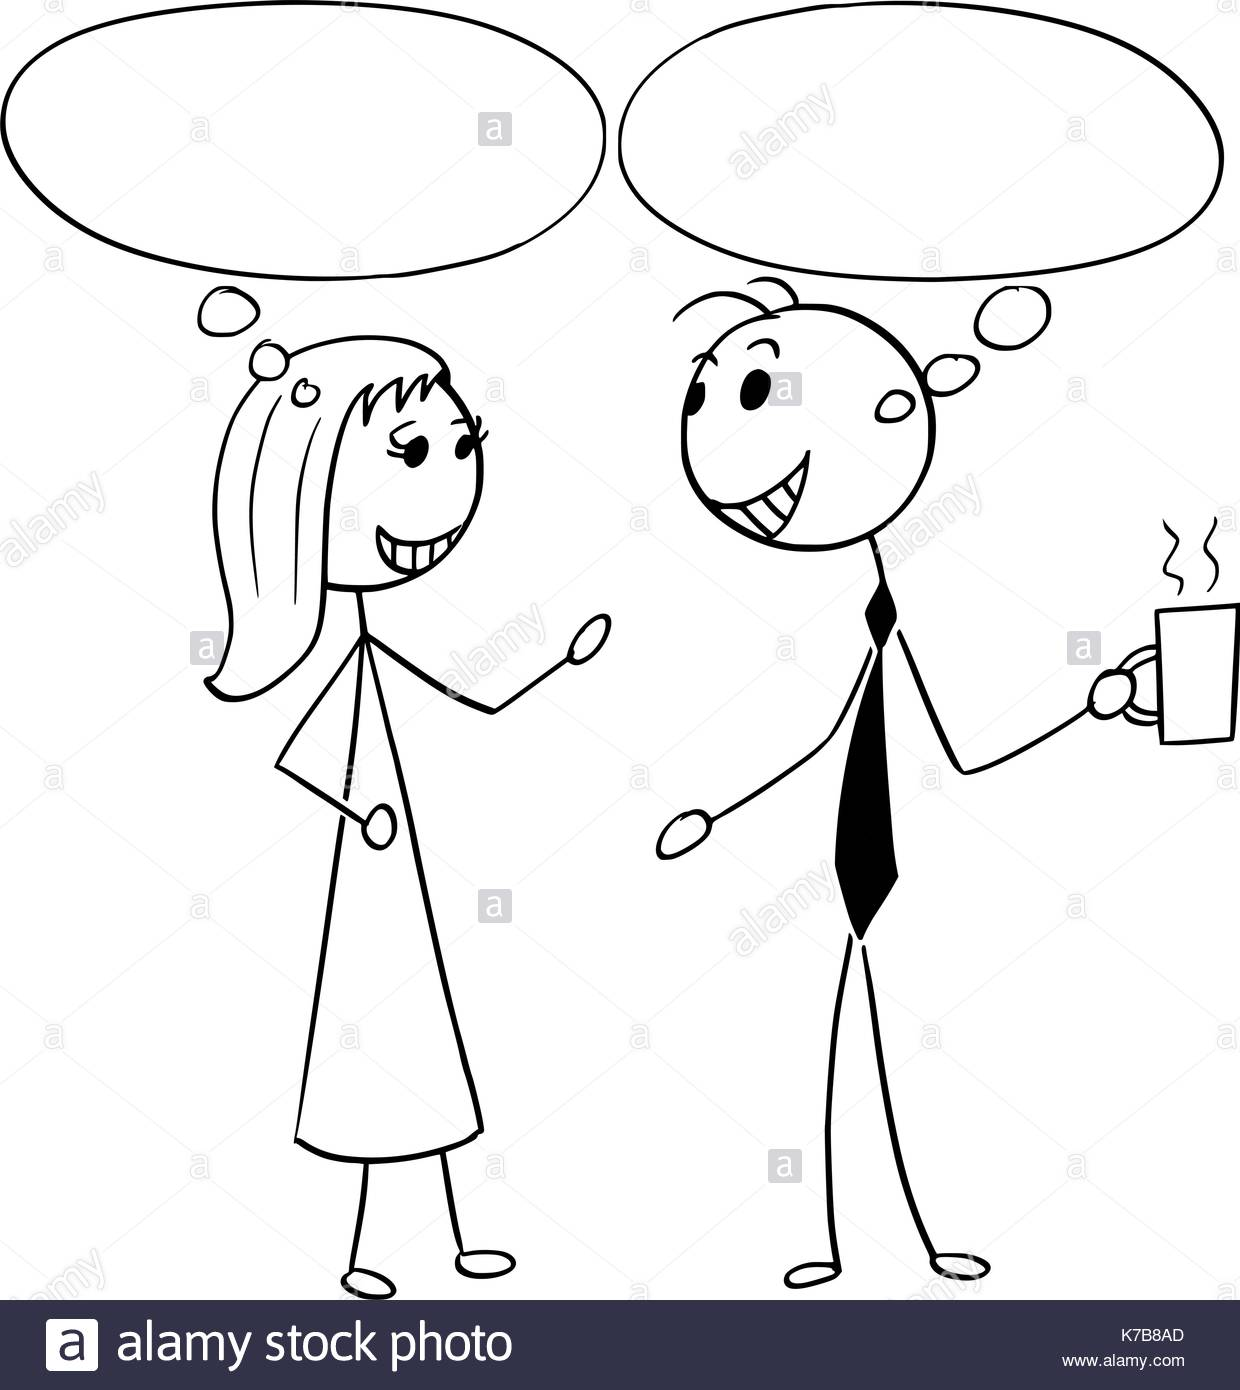 1240x1390 Cartoon Stick Man Illustration Of Man And Woman Pair Business